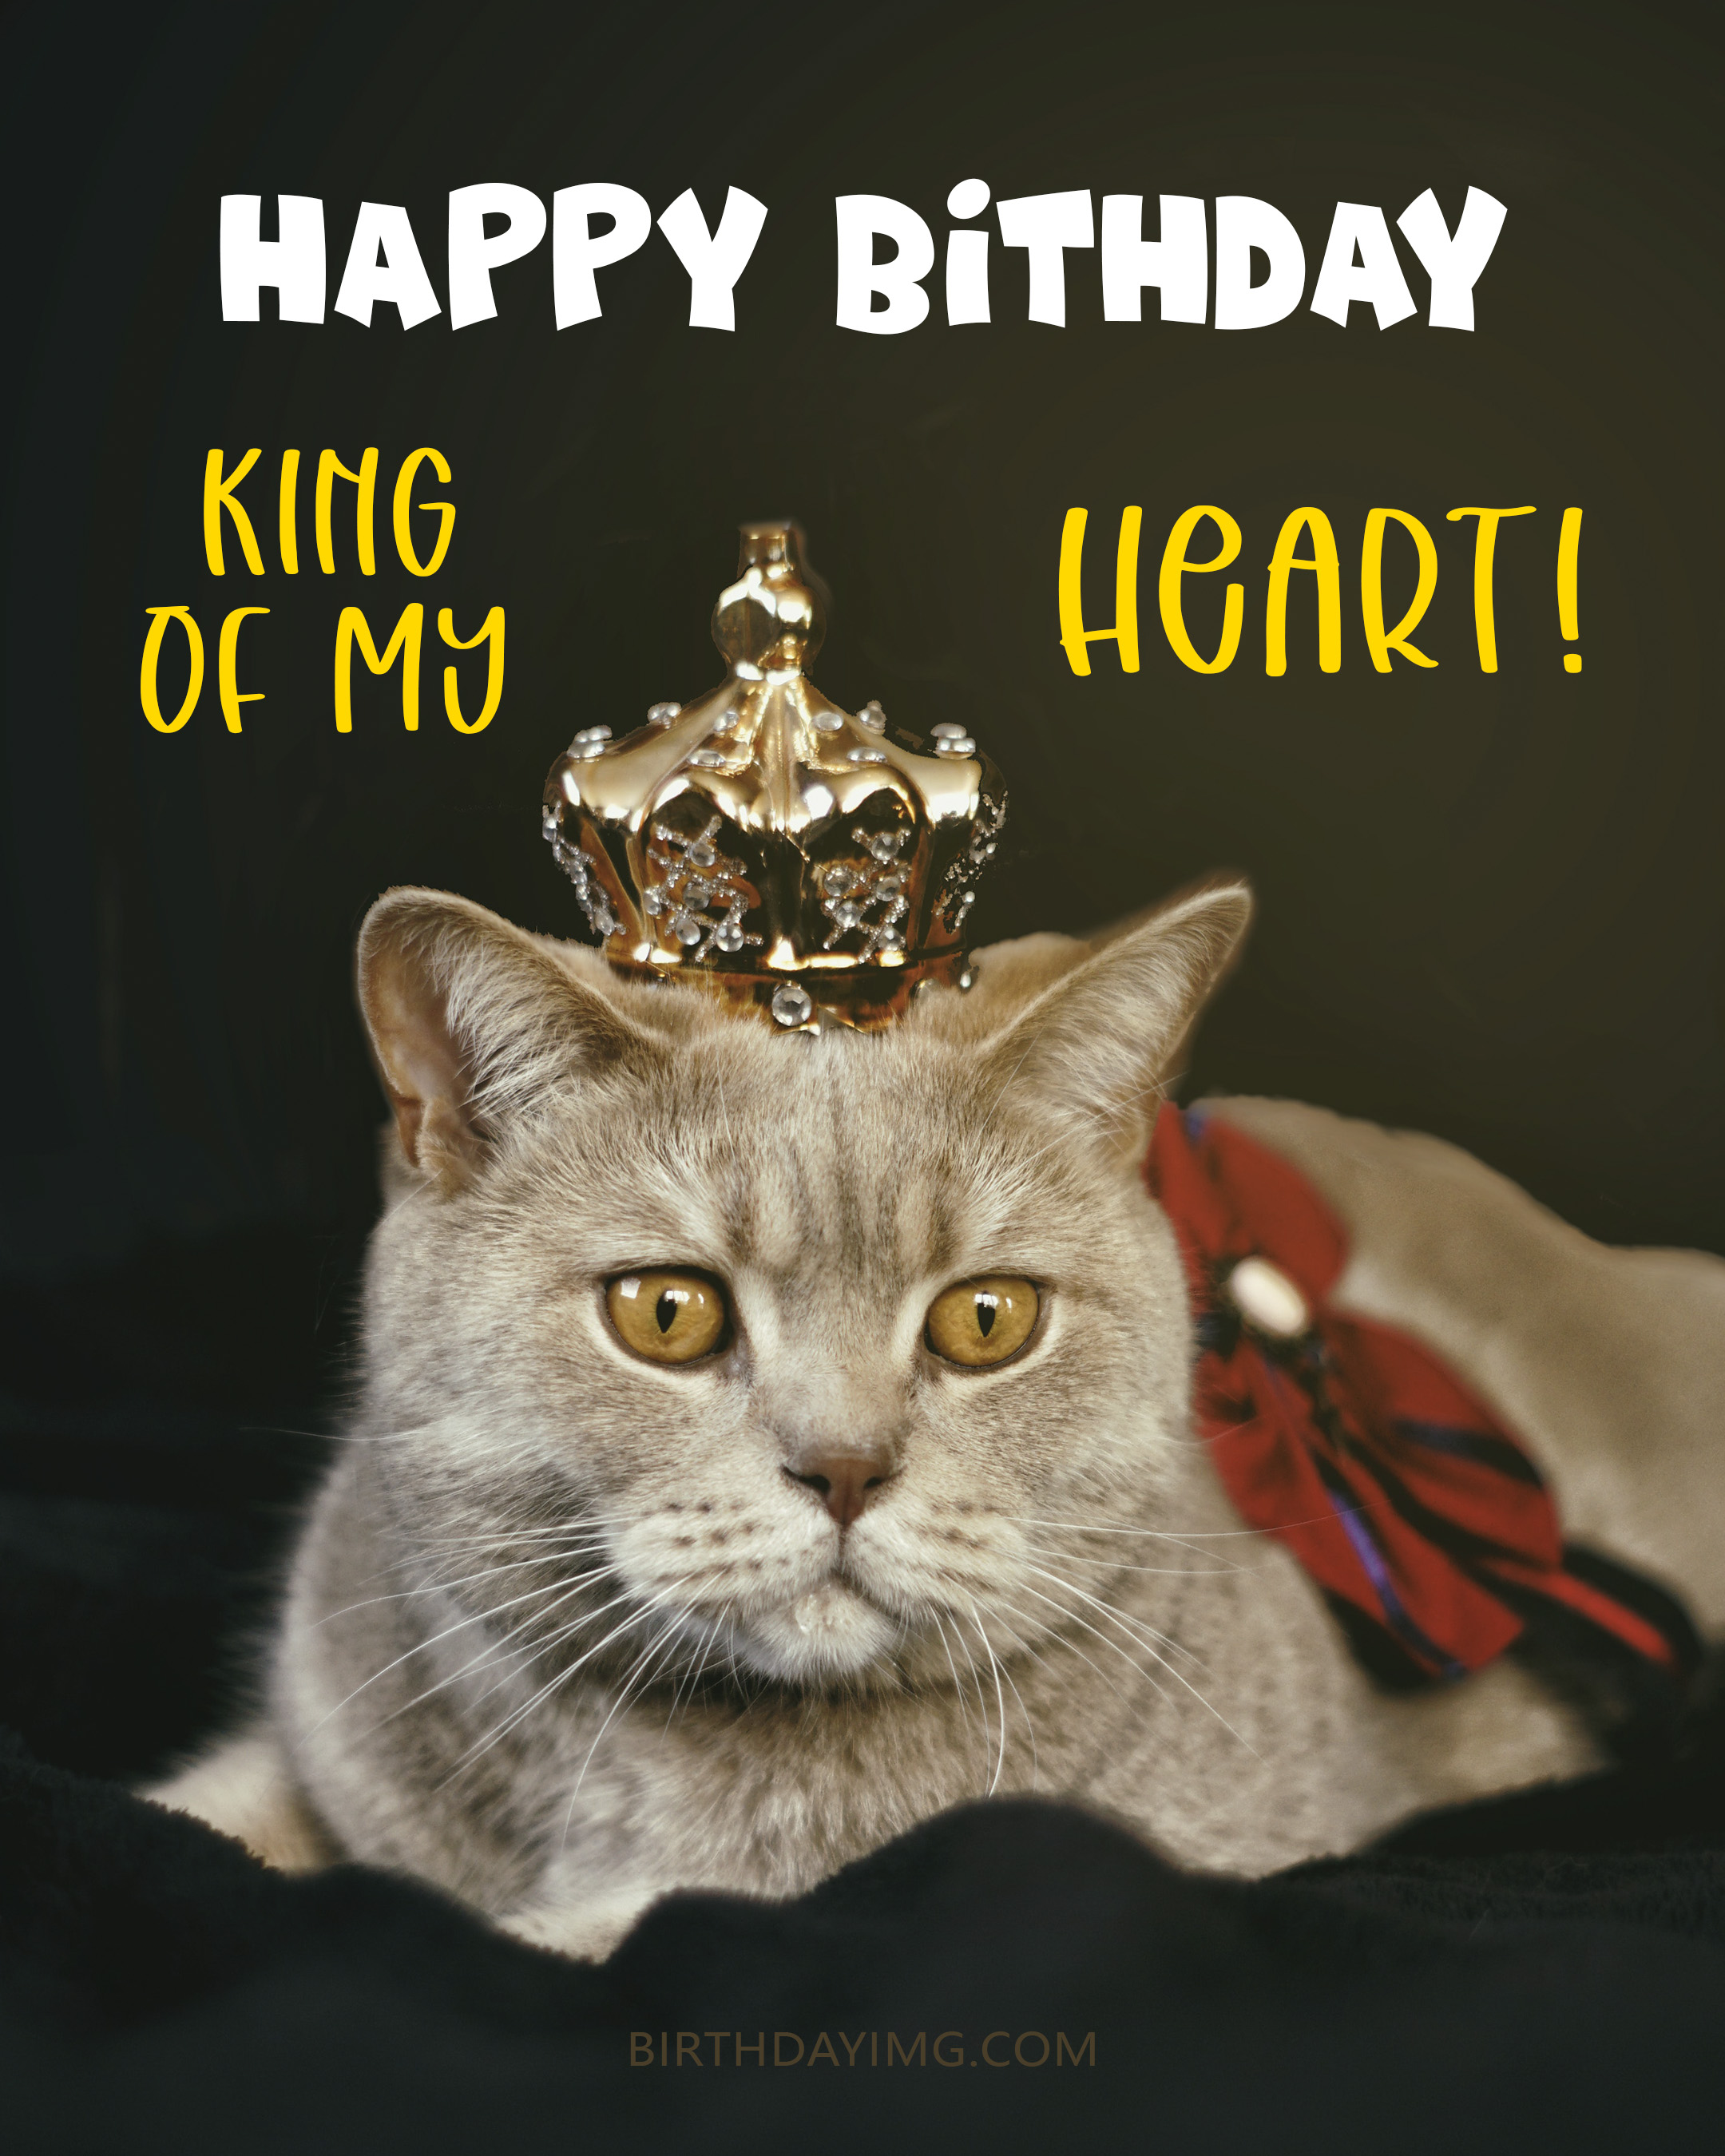 Free Funny Happy Birthday Image For Husband With Cat with Crown - birthdayimg.com